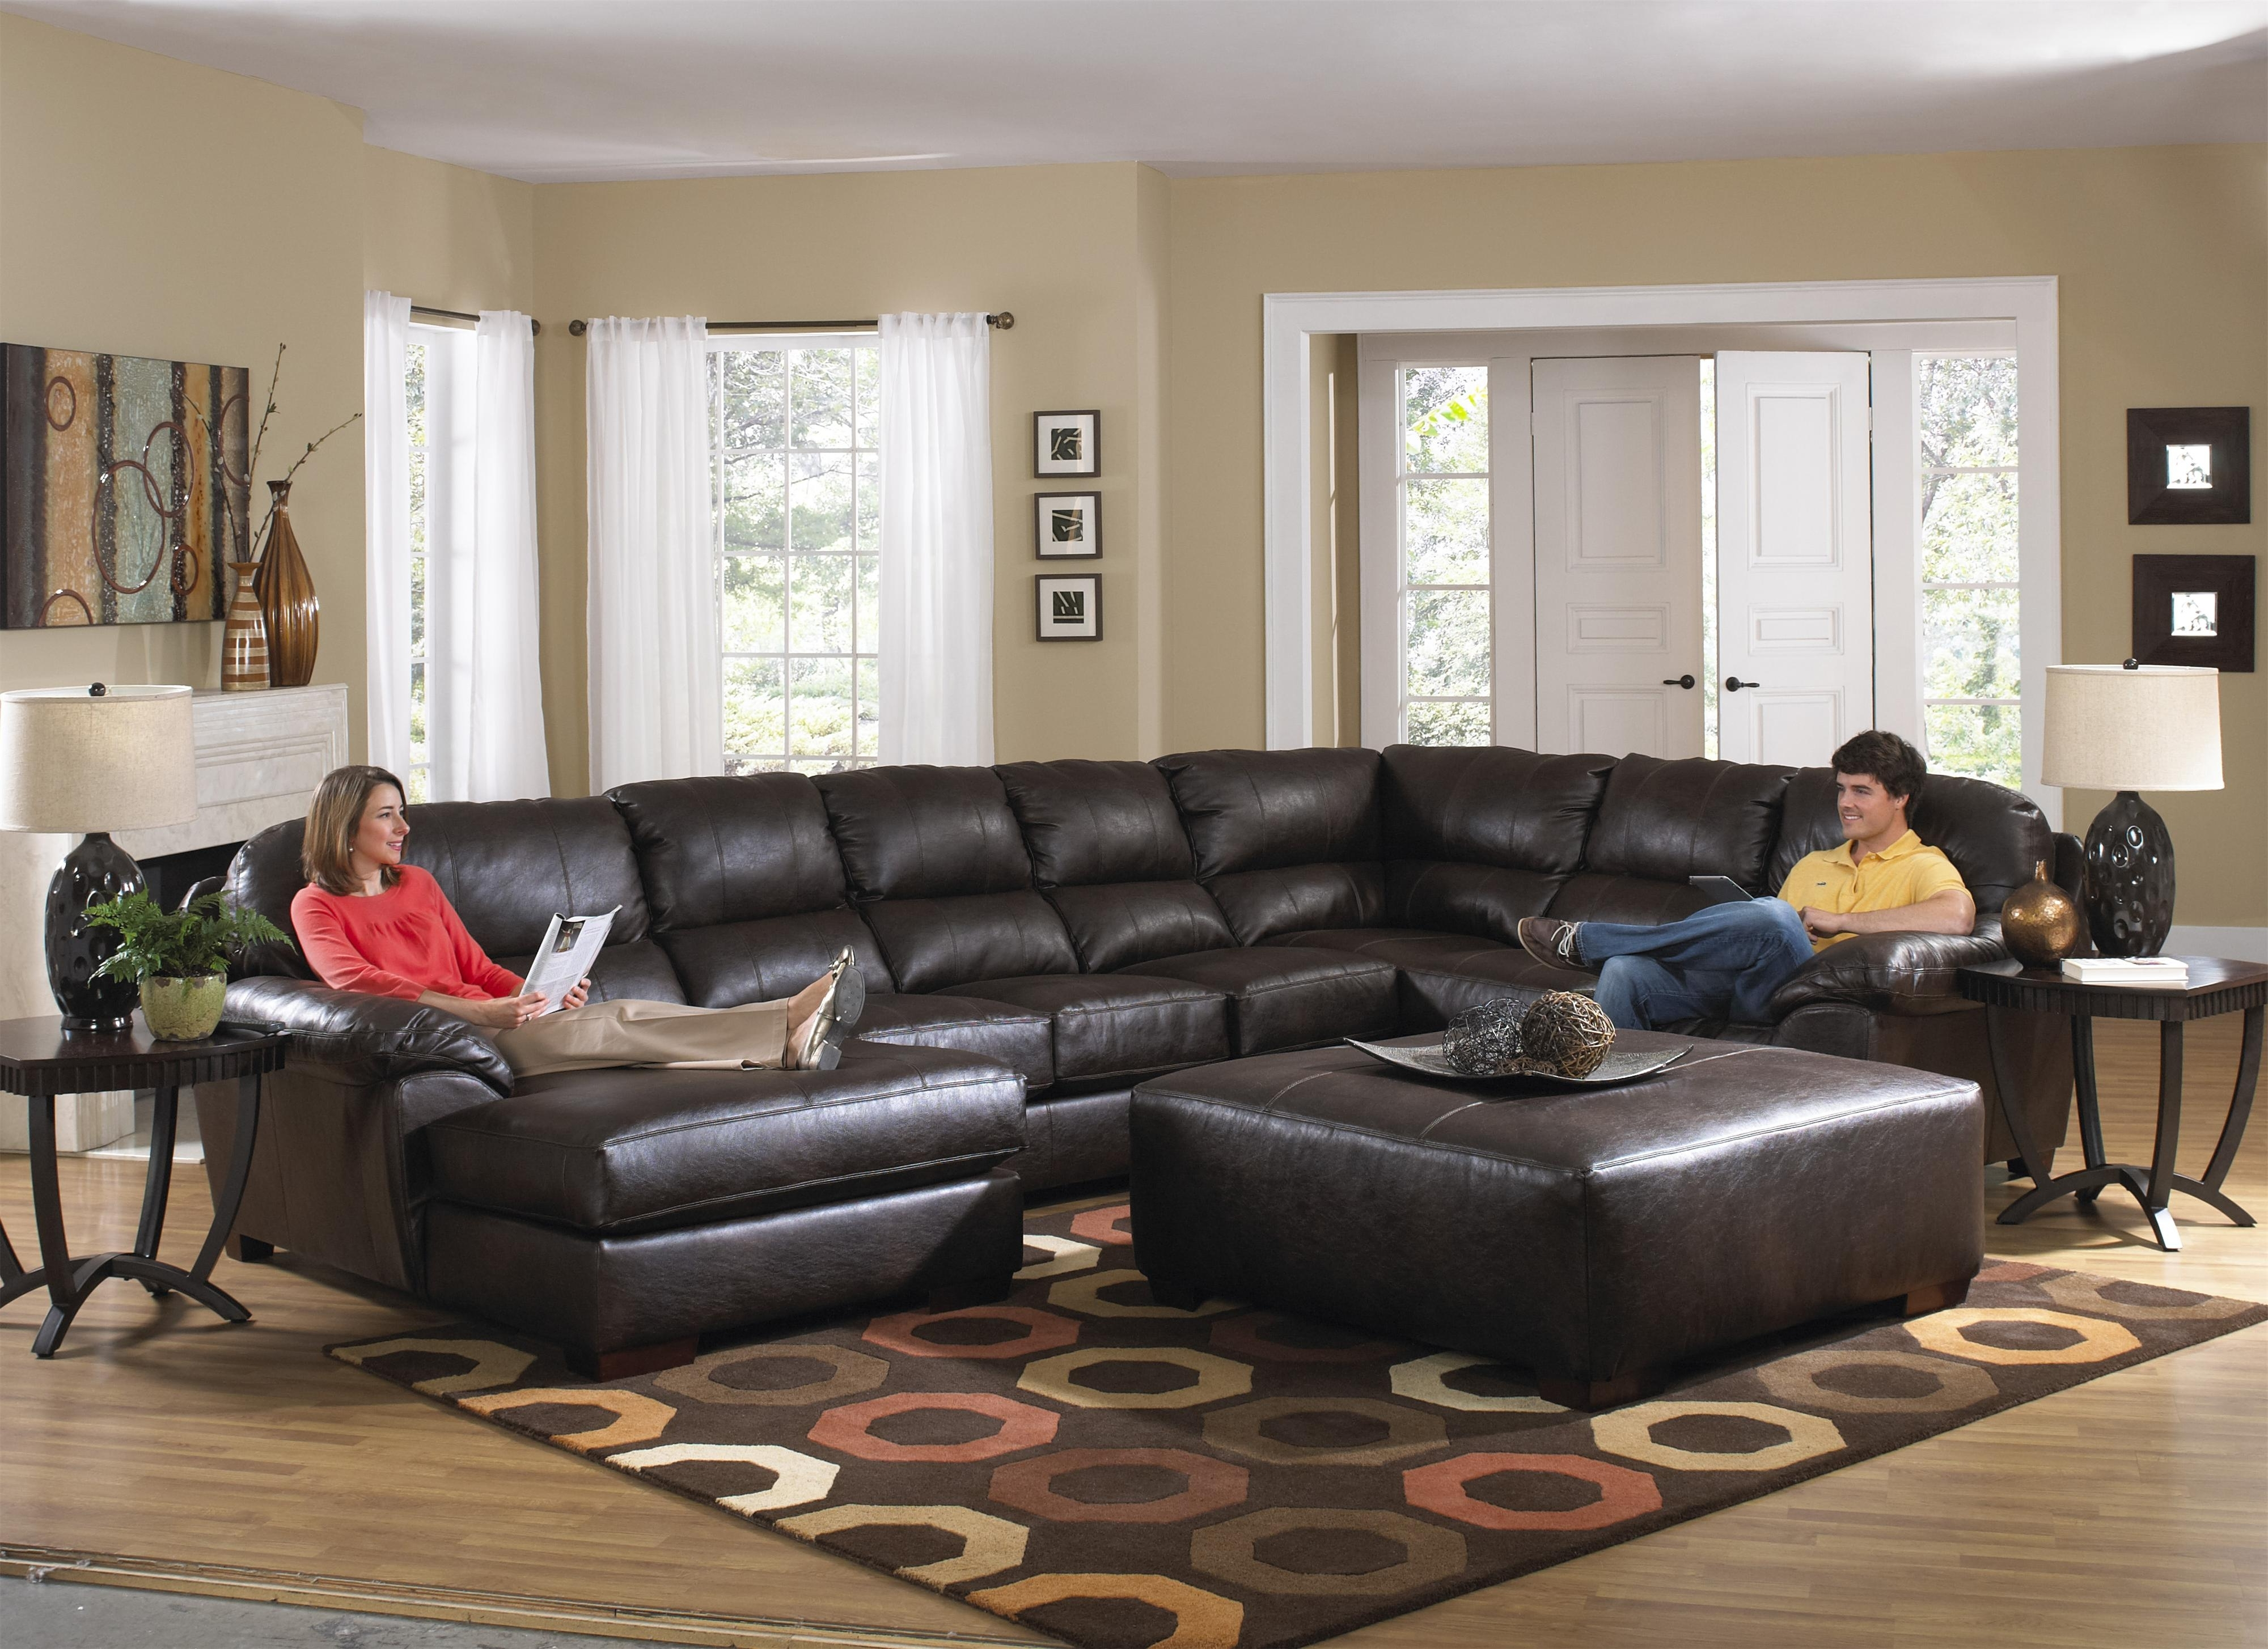 Oversized Couches Ashley Furniture Extra Deep Couch Oversized Inside Widely Used Oversized Sectional Sofas (View 12 of 20)